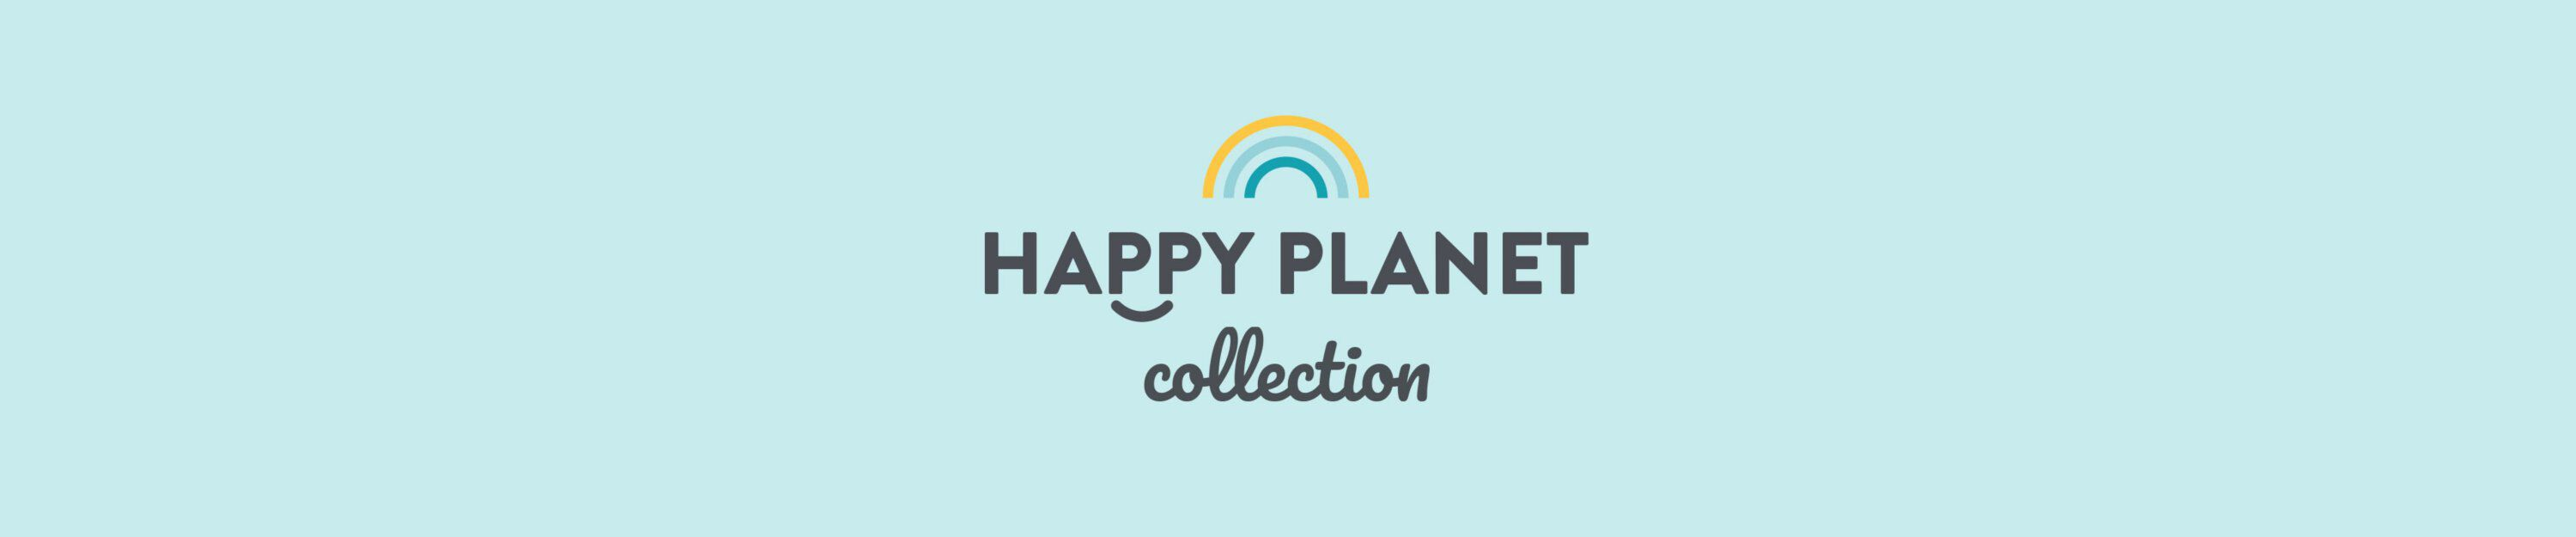 happy planet collection slim banner